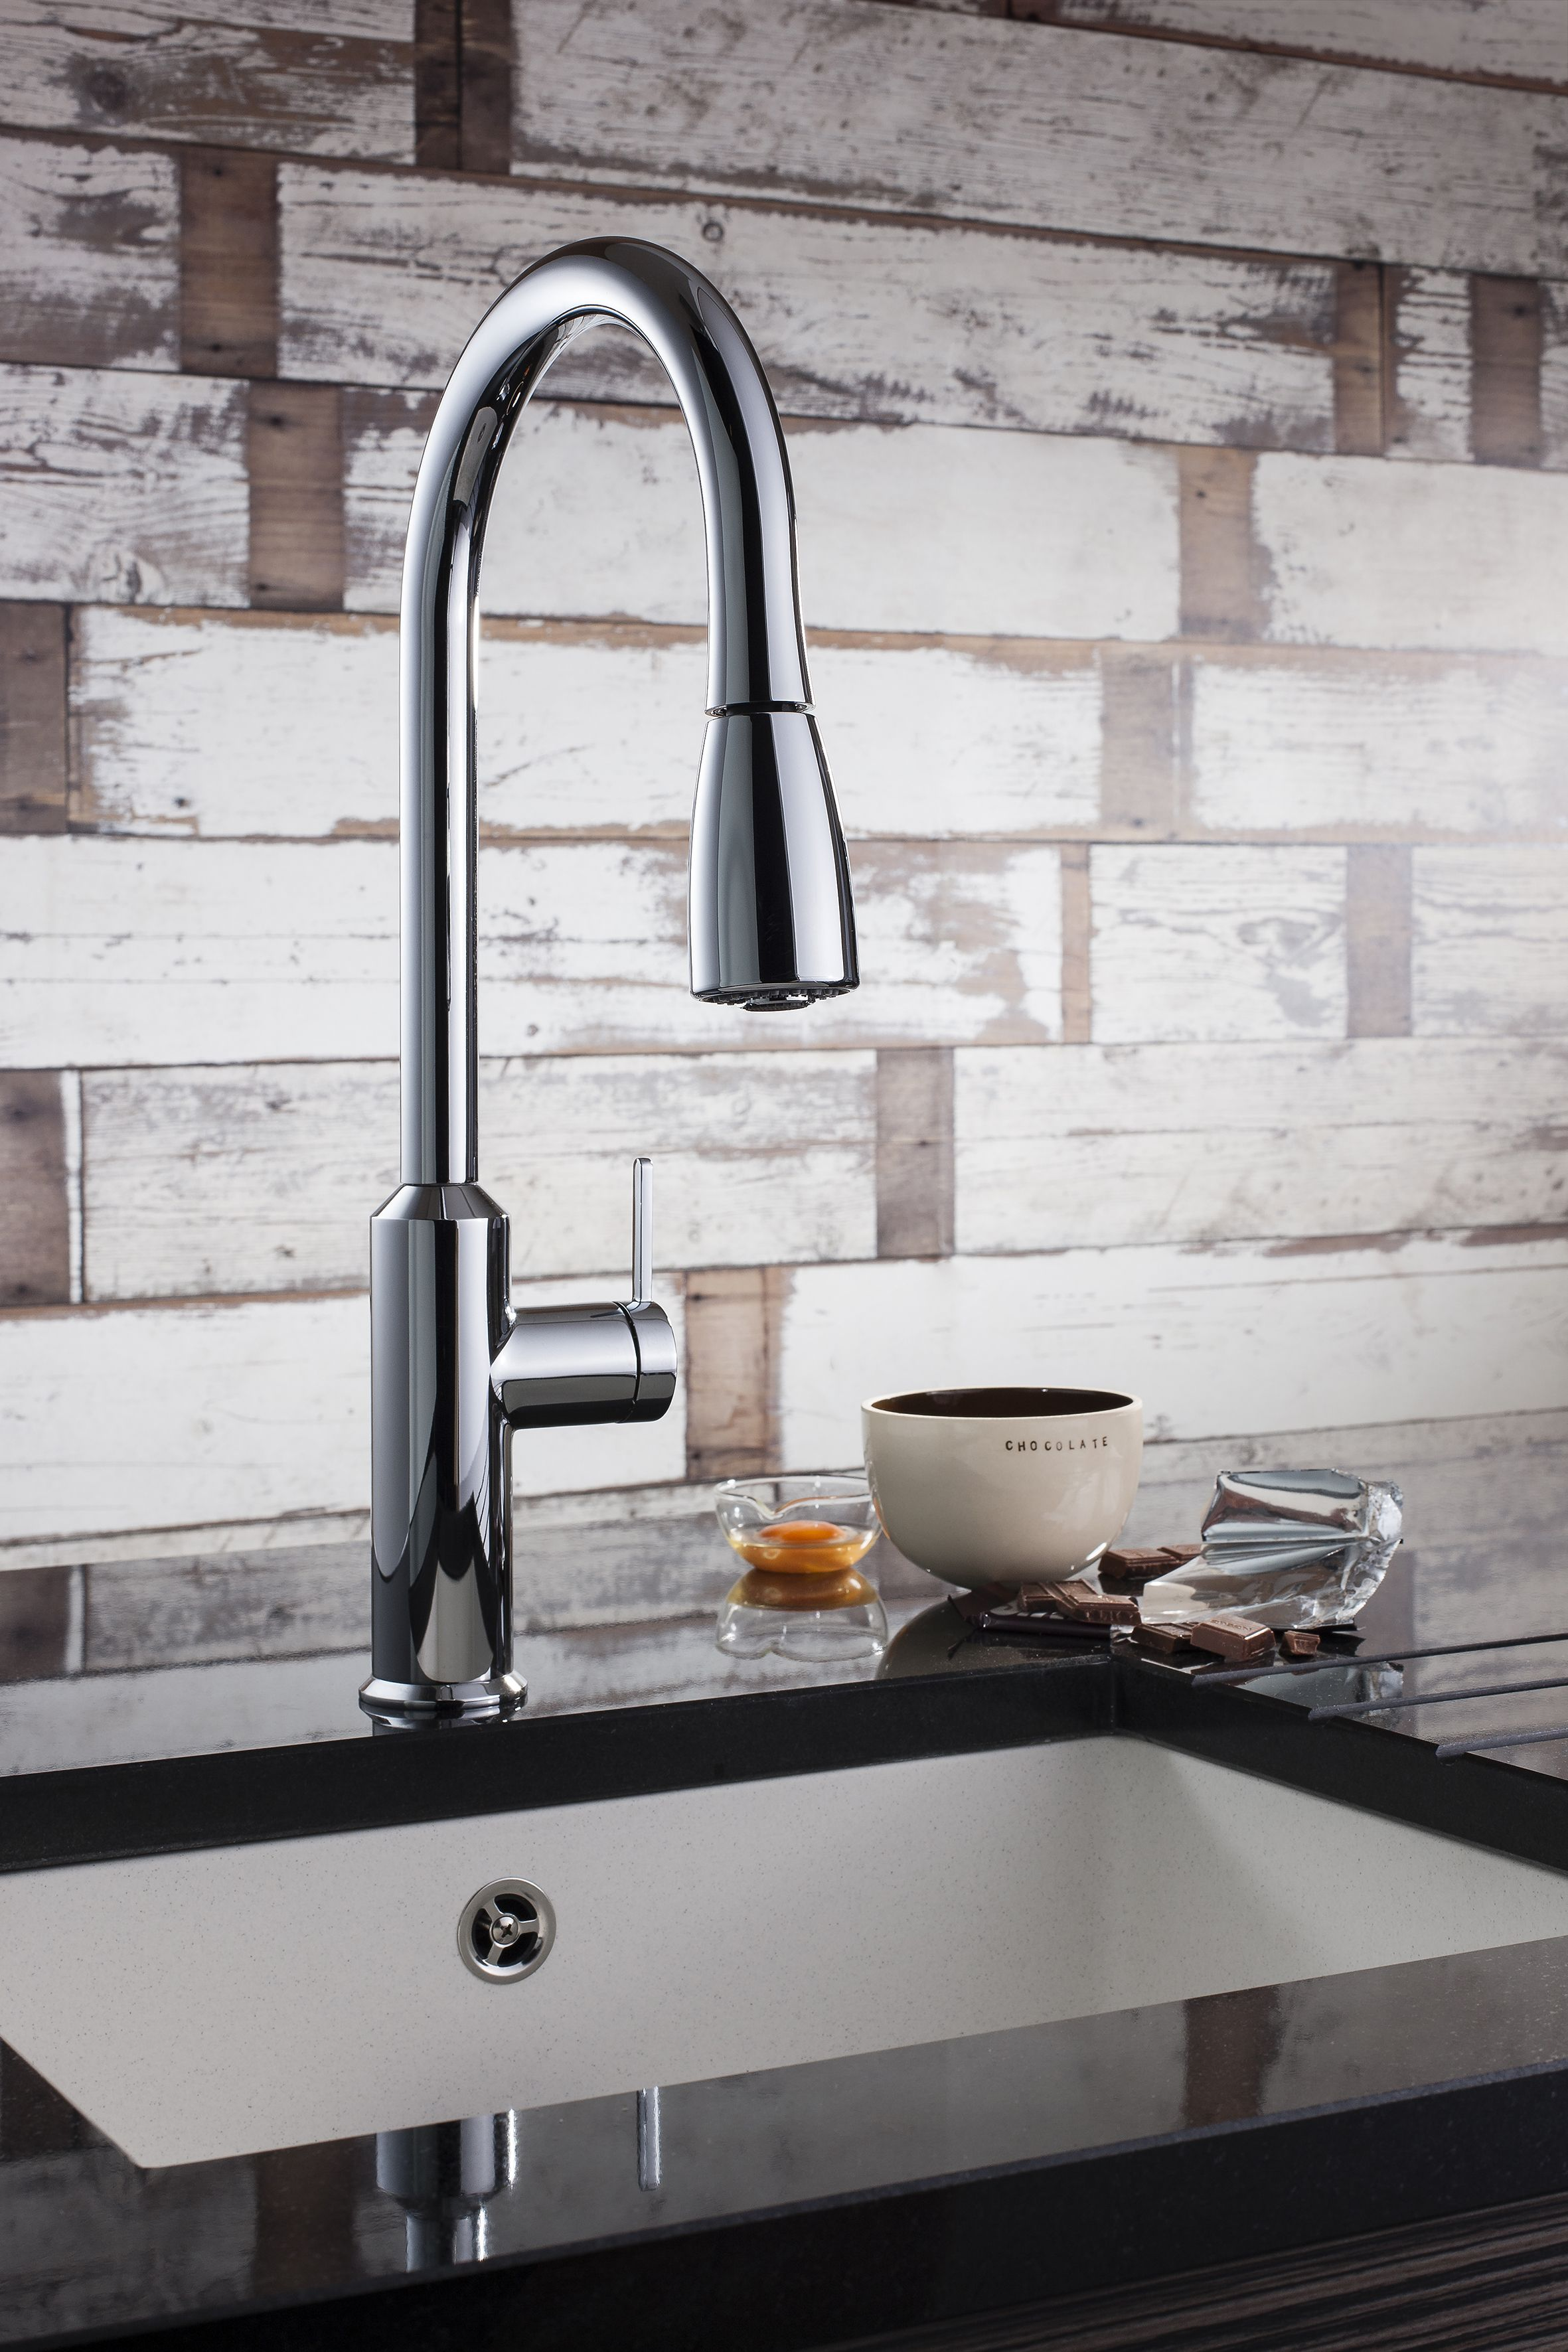 Pull out spray kitchen taps uk - Cucina Cook Side Lever Kitchen Mixer Tap With Pull Out Spray From Crosswater Http